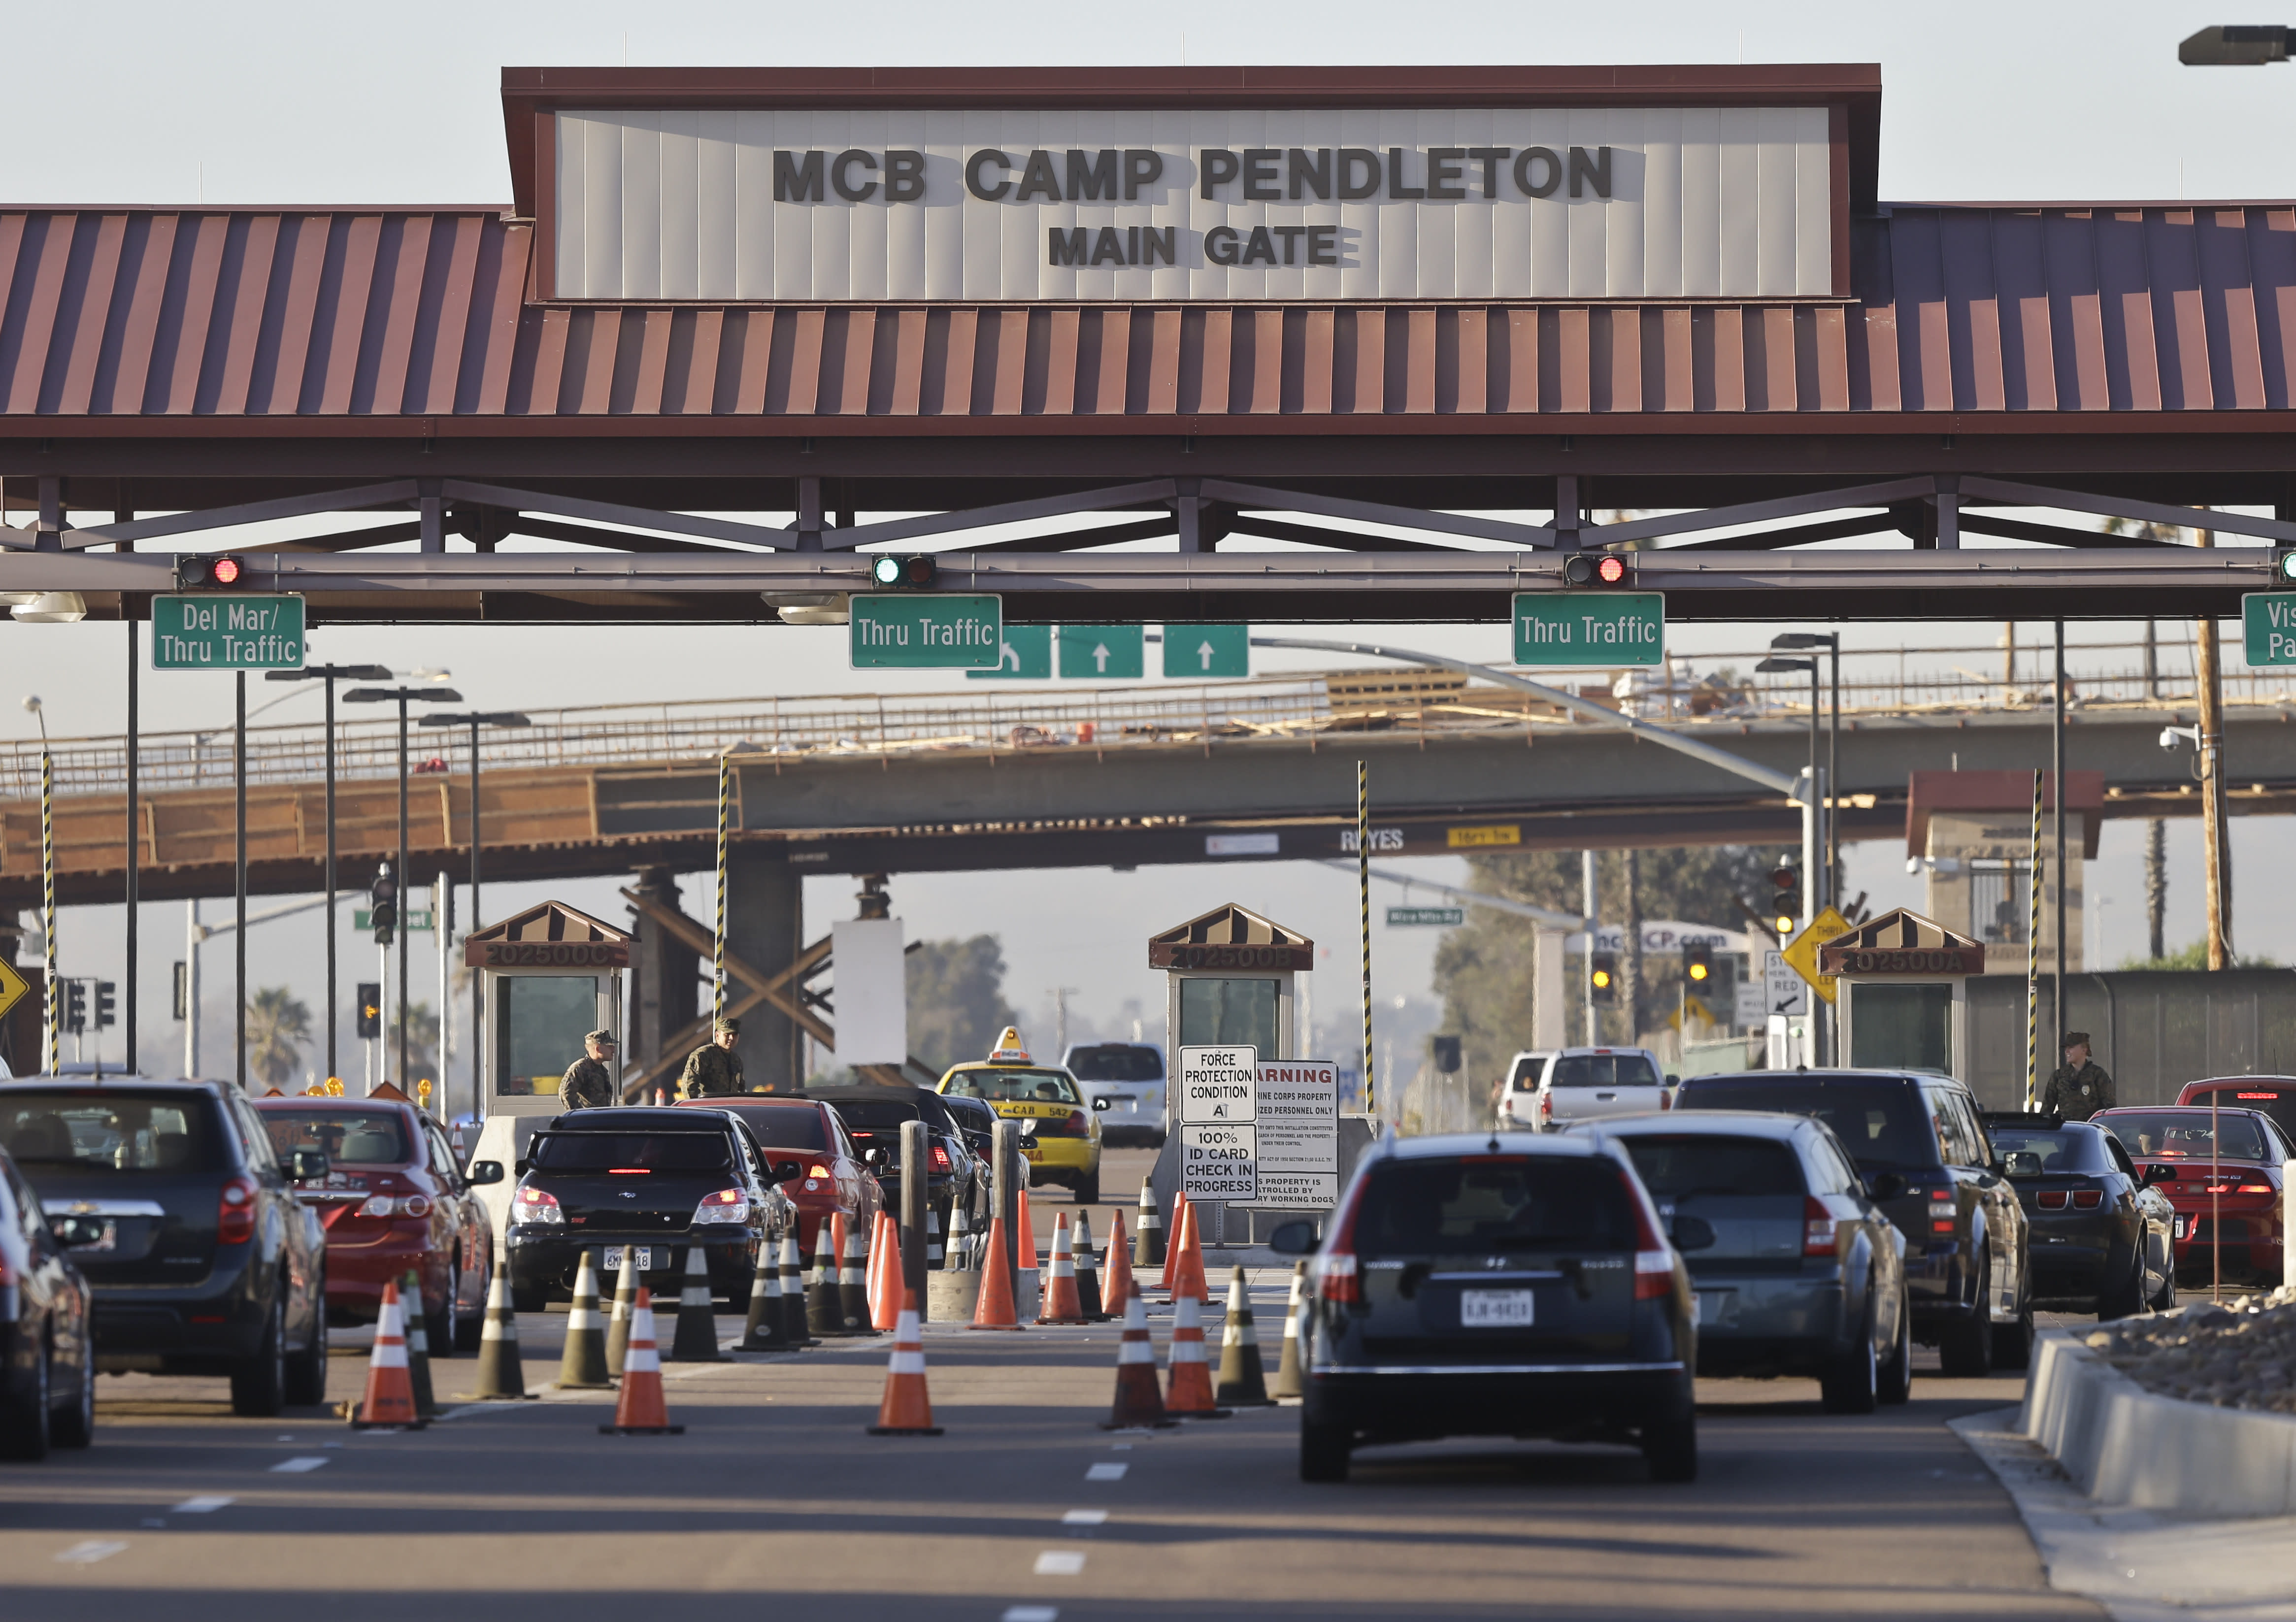 Marines arrested for alleged crimes including human smuggling, drug-related offenses